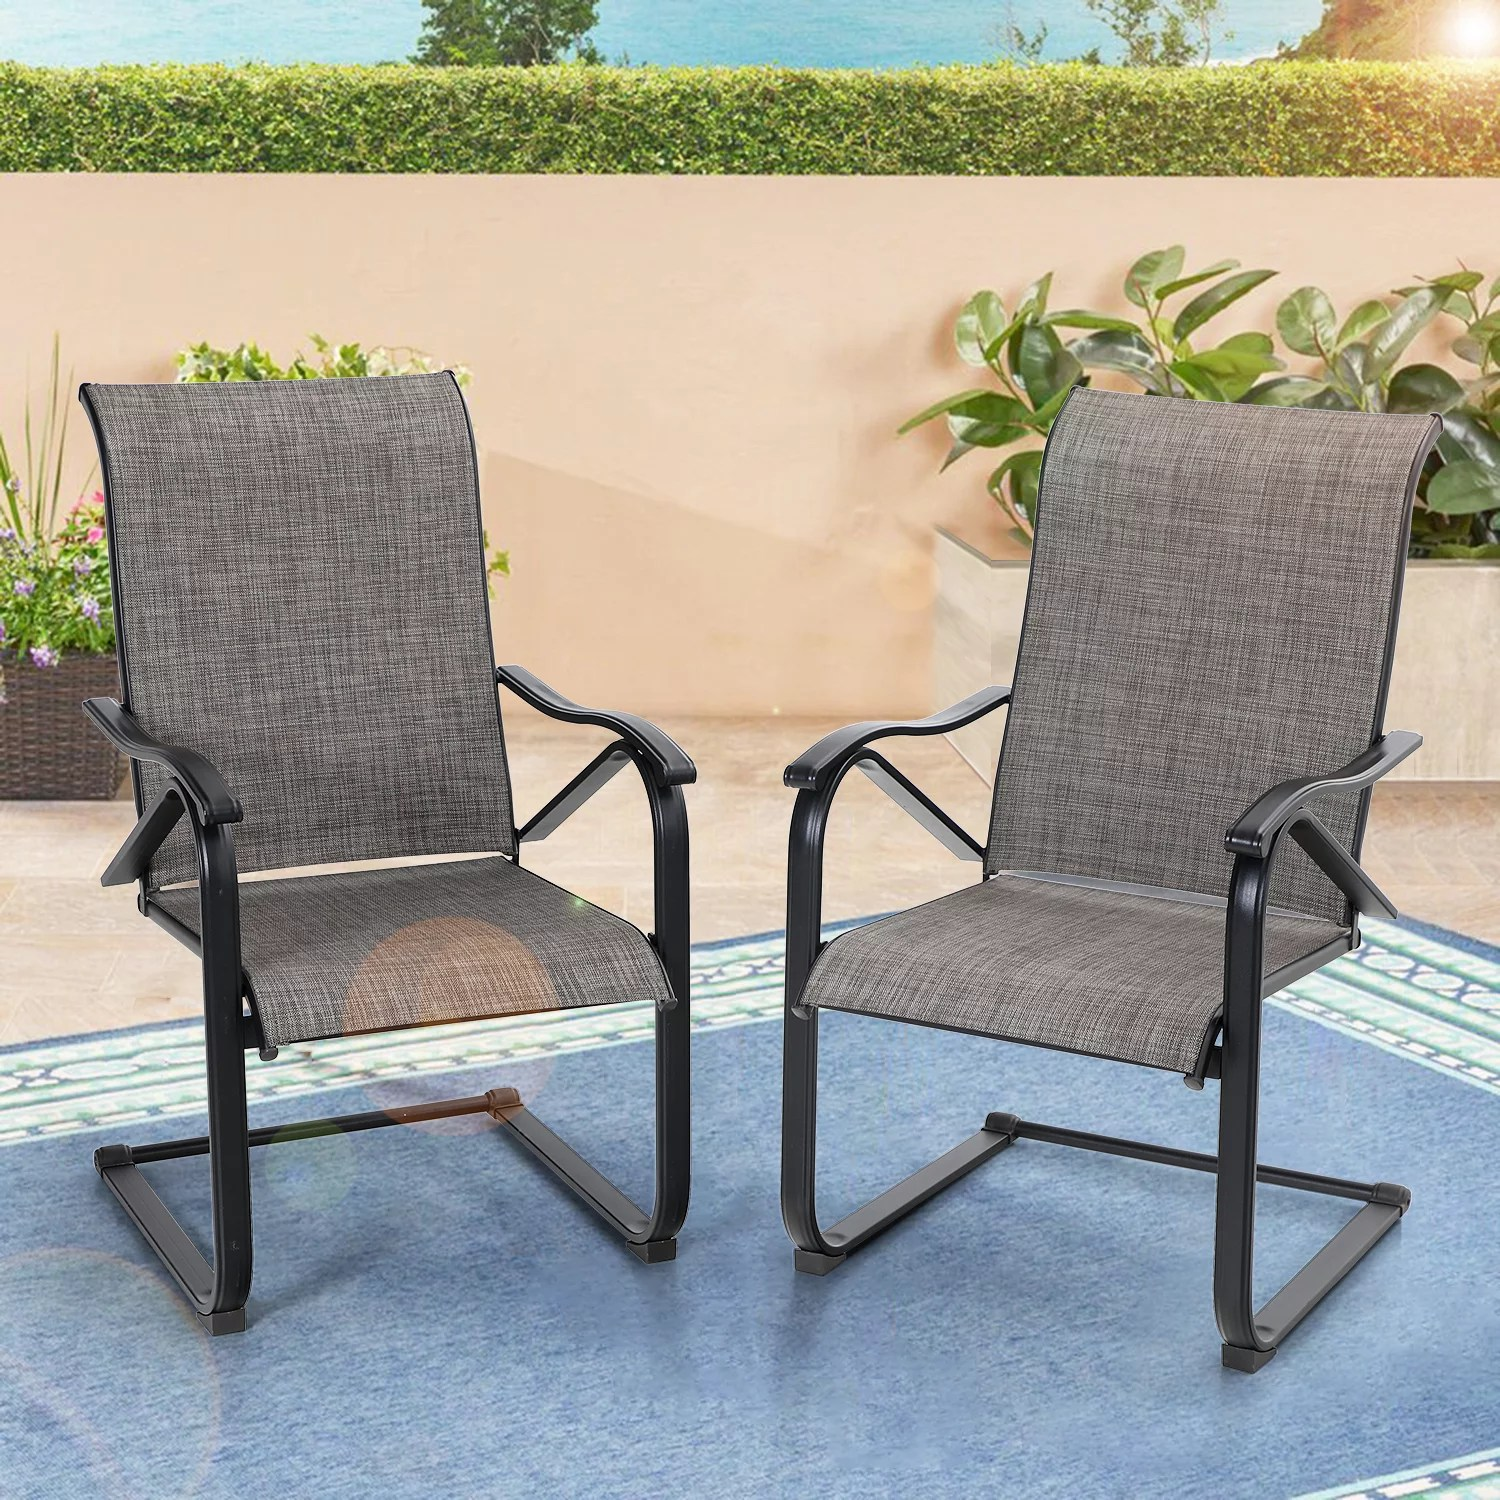 mf studio 2pcs outdoor patio dining chairs outdoor furniture c spring metal bistro chairs high back support 300lbs for backyard garden balcony